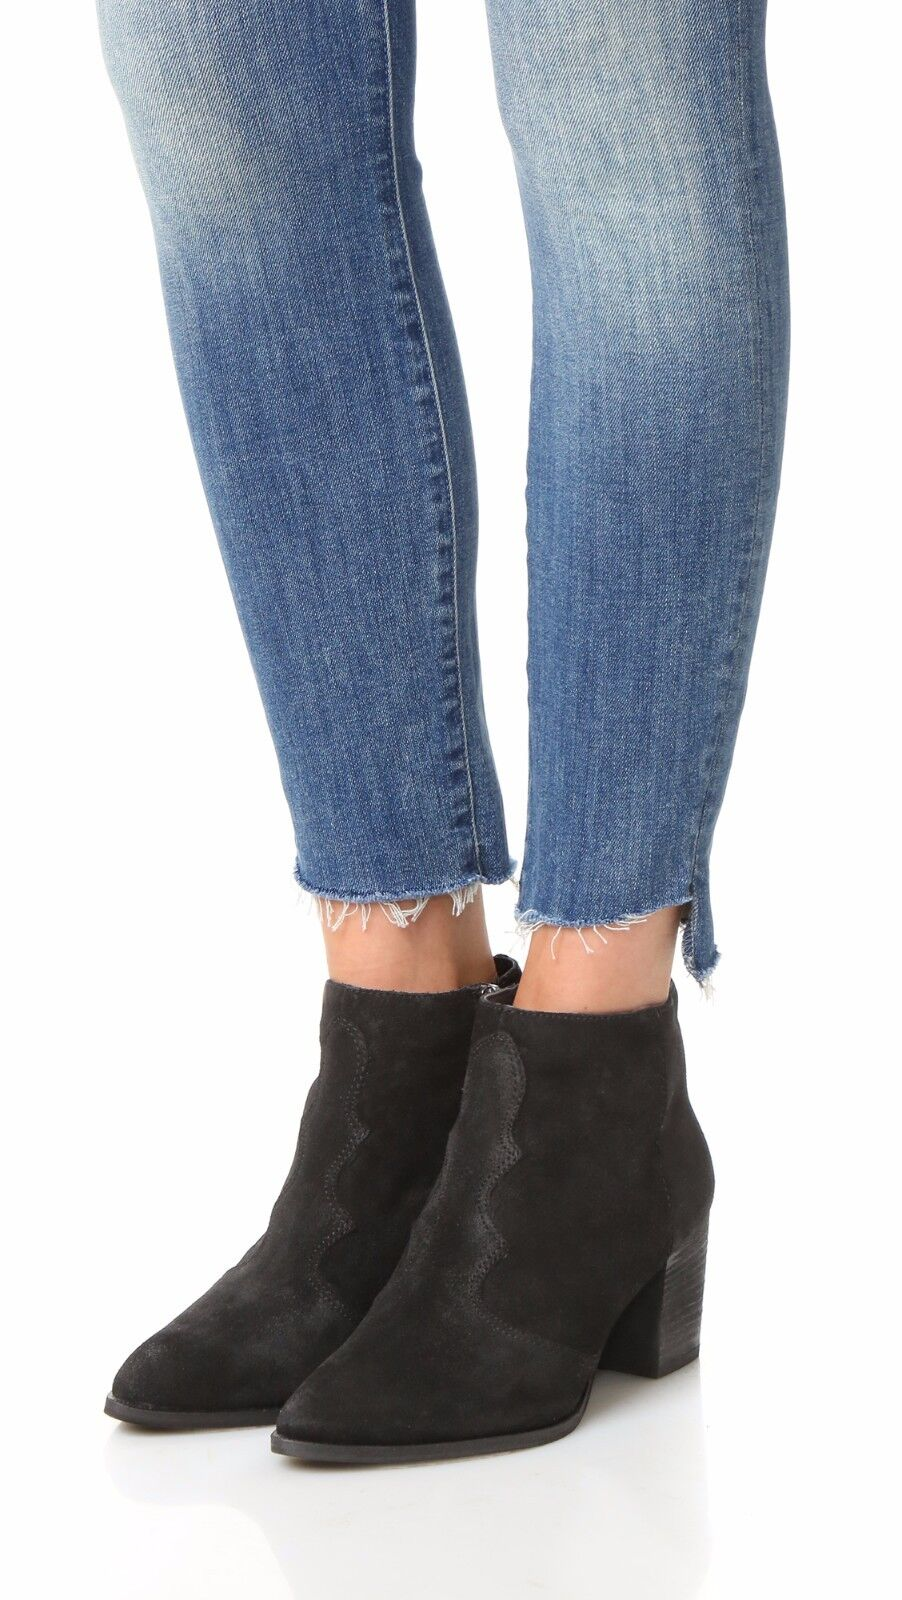 0 size 11 Dolce Vita Lennon Black Suede Heel Bootie Womens Ankle Shoes